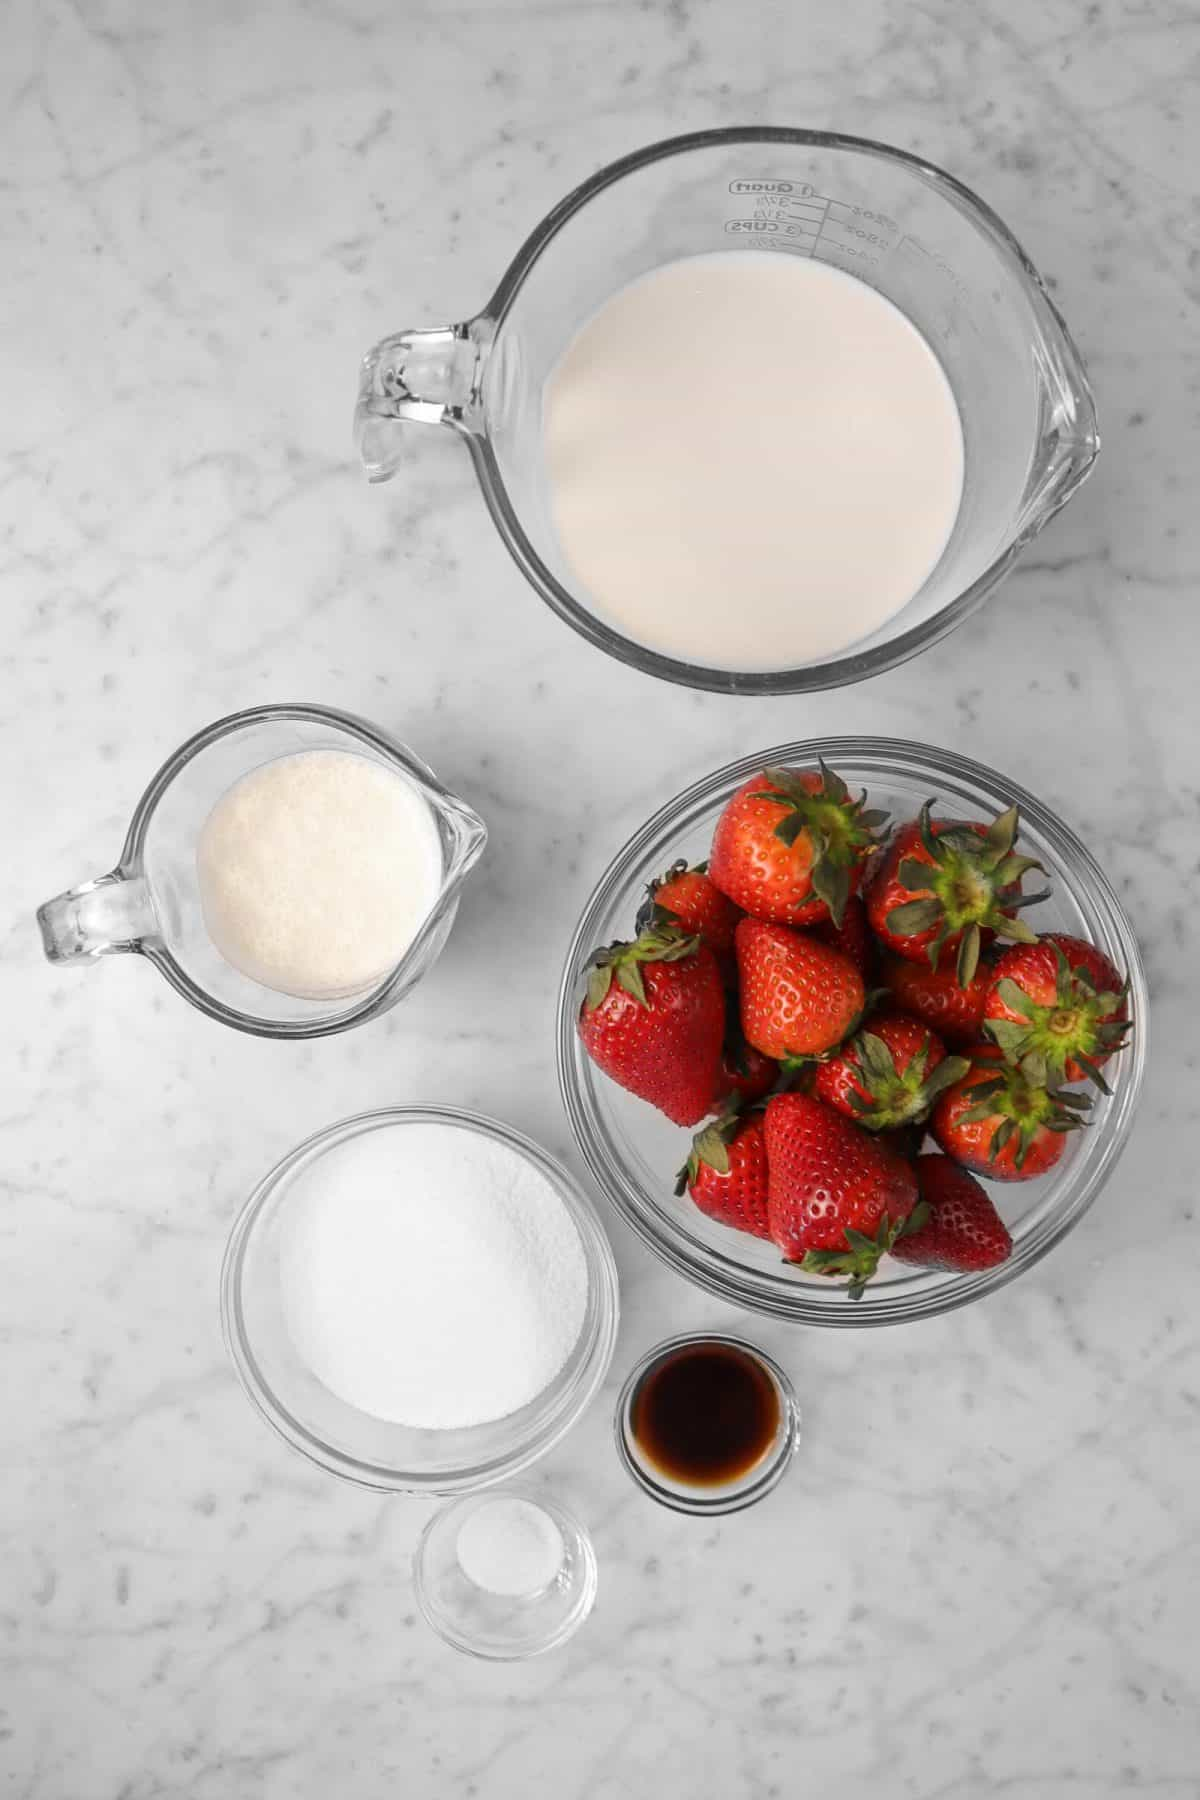 ingredients for strawberry ice cream on a marble counter